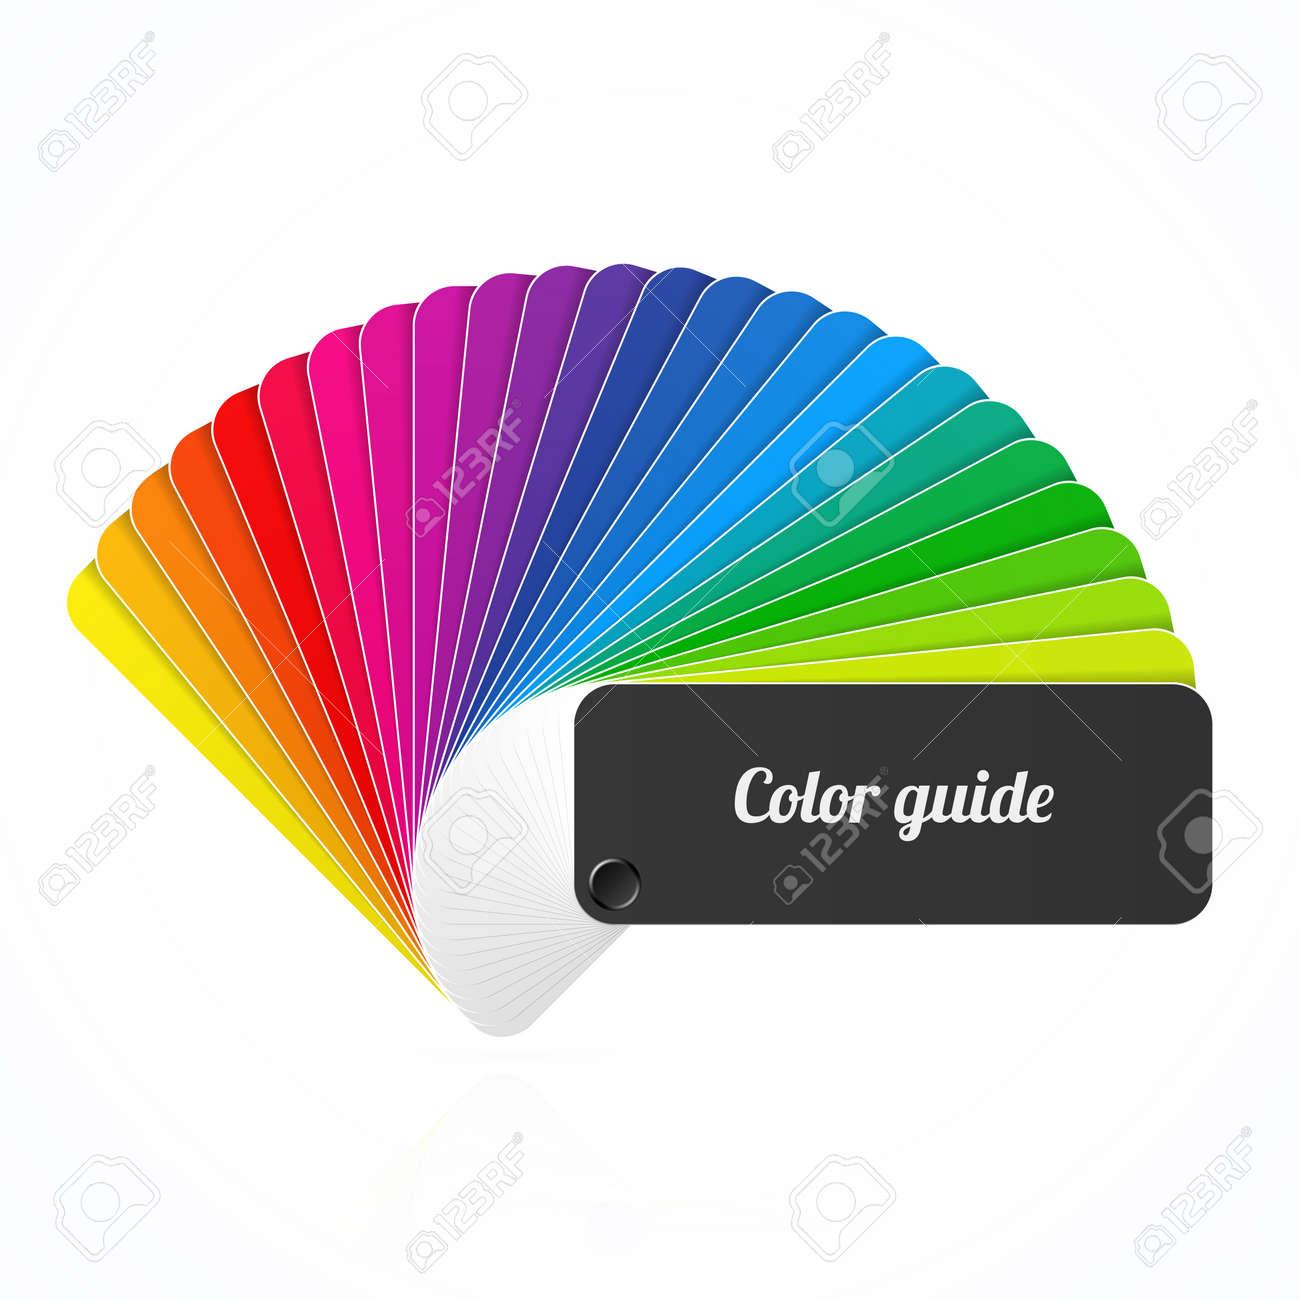 color swatch book color palette guide fan catalogue illustration - Color Swatch Book